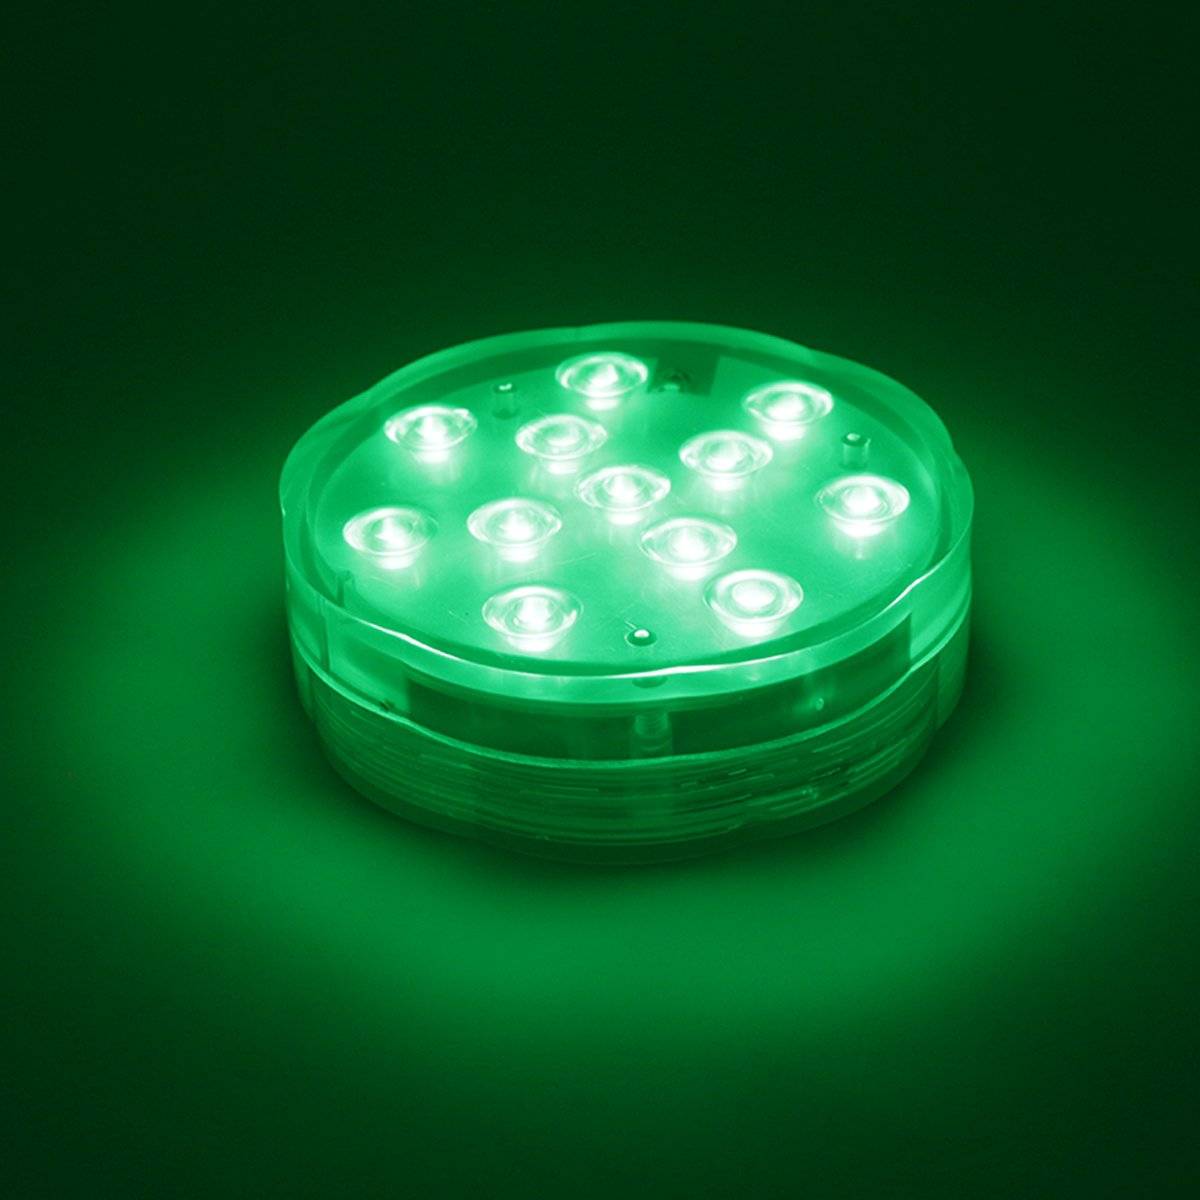 ZSCOO 12 LED Multi Function Floating Light IP67 Waterproof Pool & Hot Tub Lamp With Timer and Remote Control